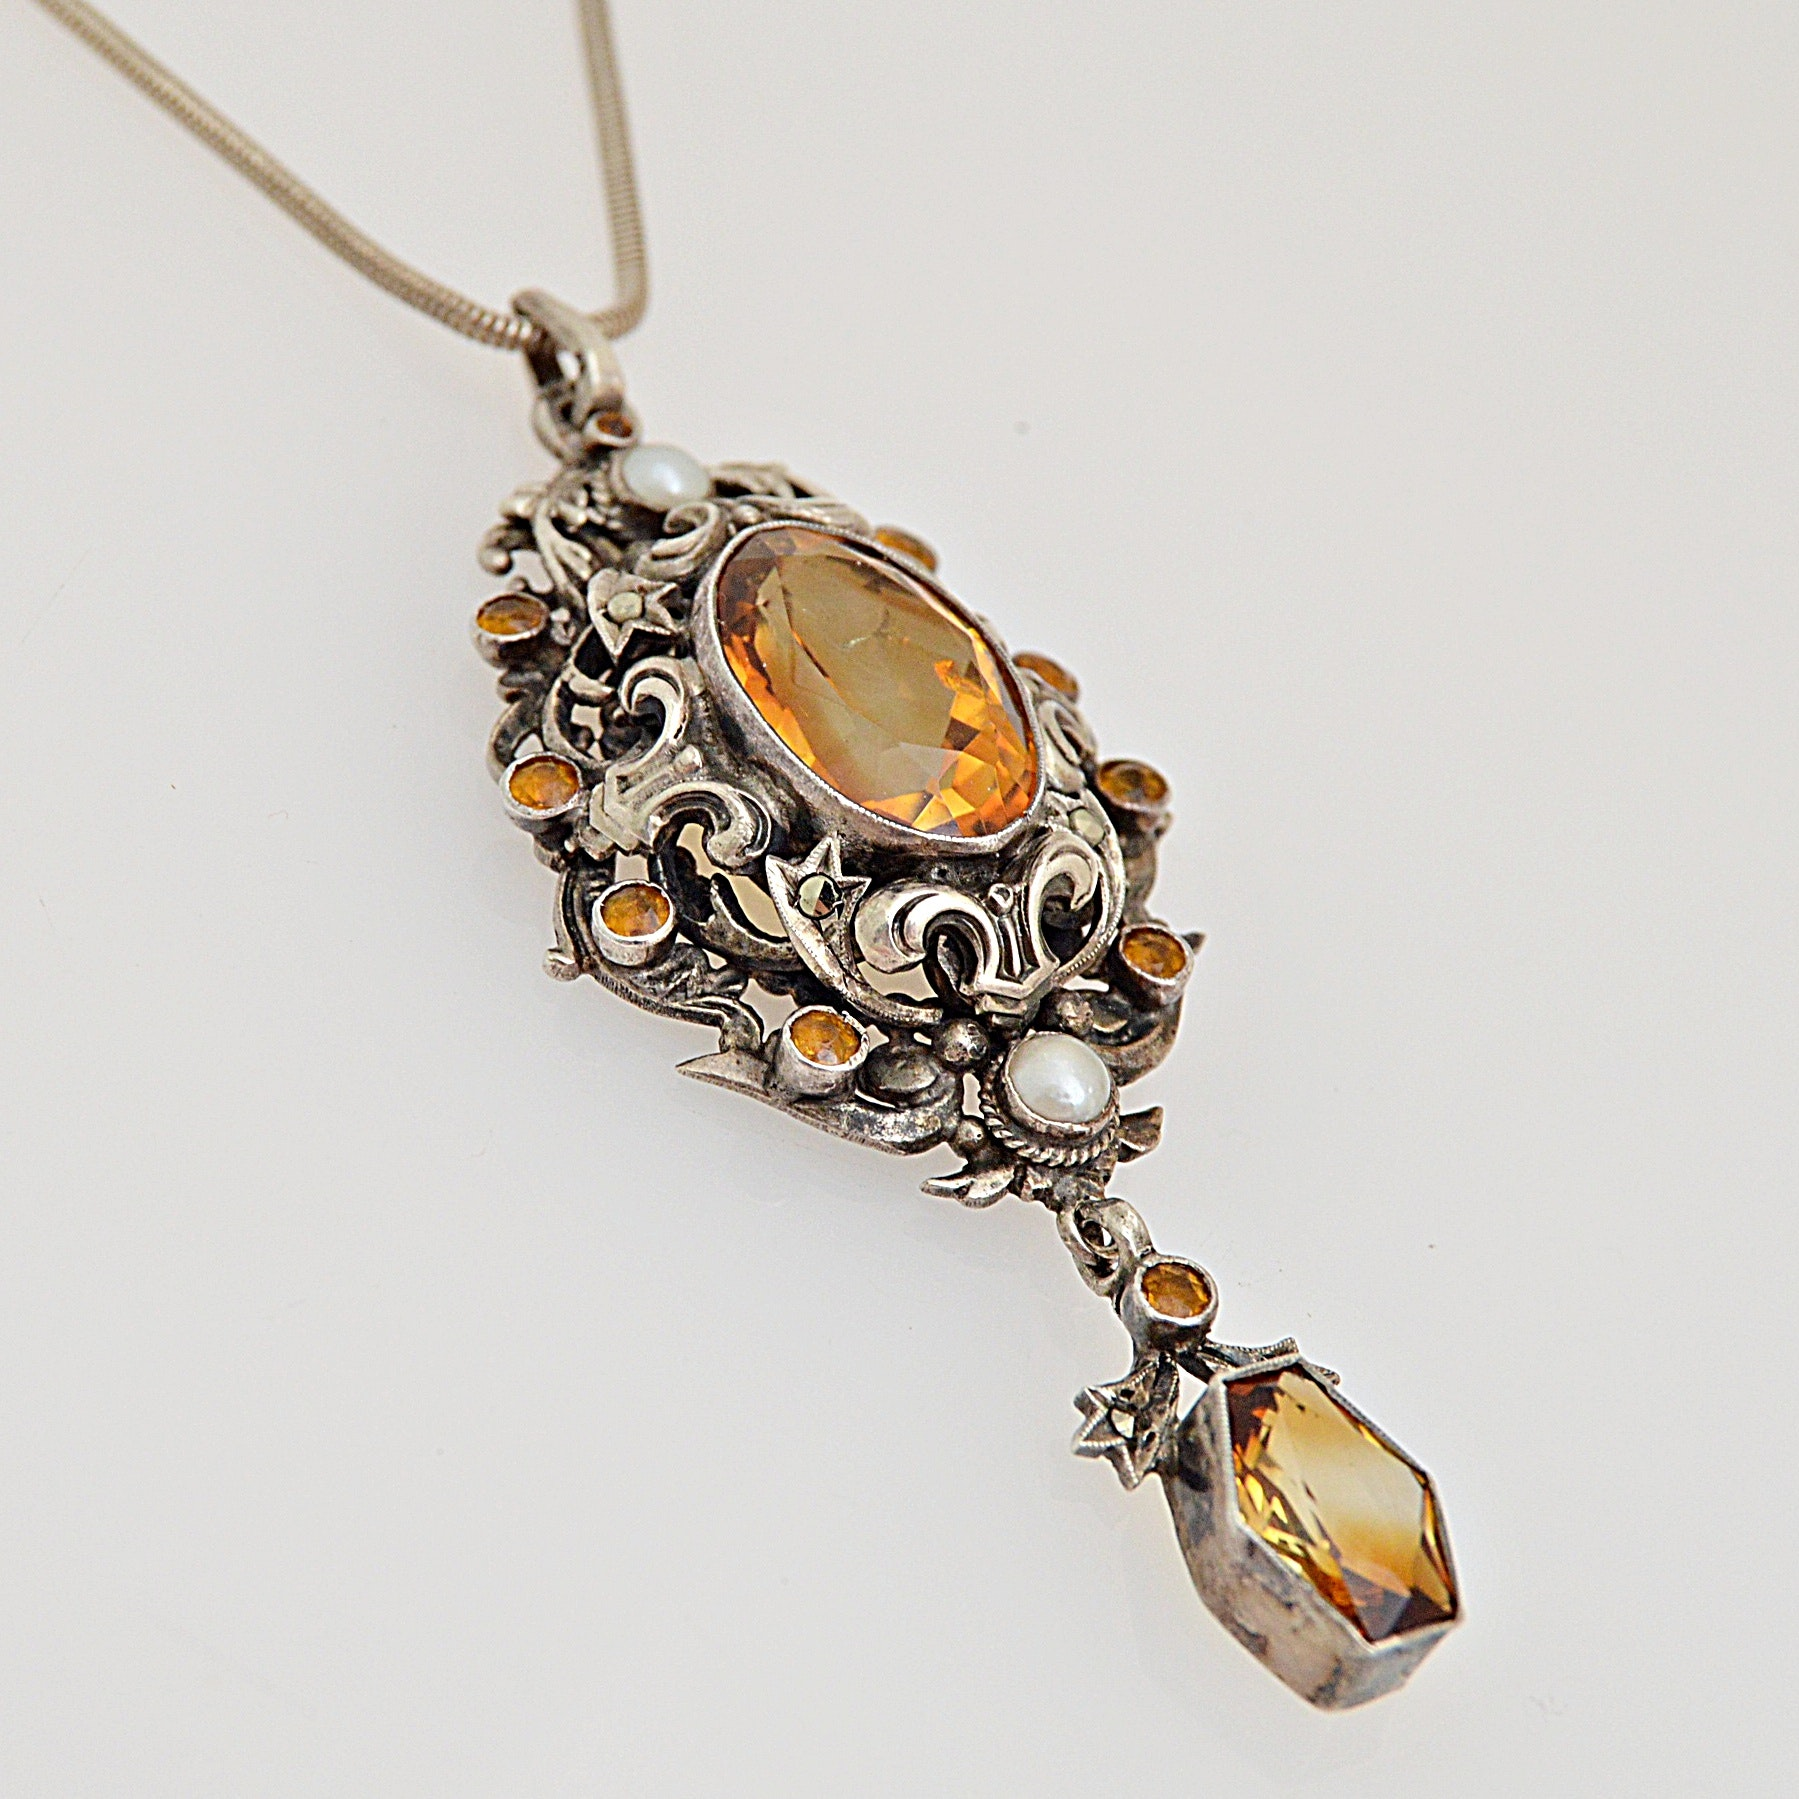 Vintage Sterling Silver, Citrine, Cultured Pearl and Glass Pendant Necklace